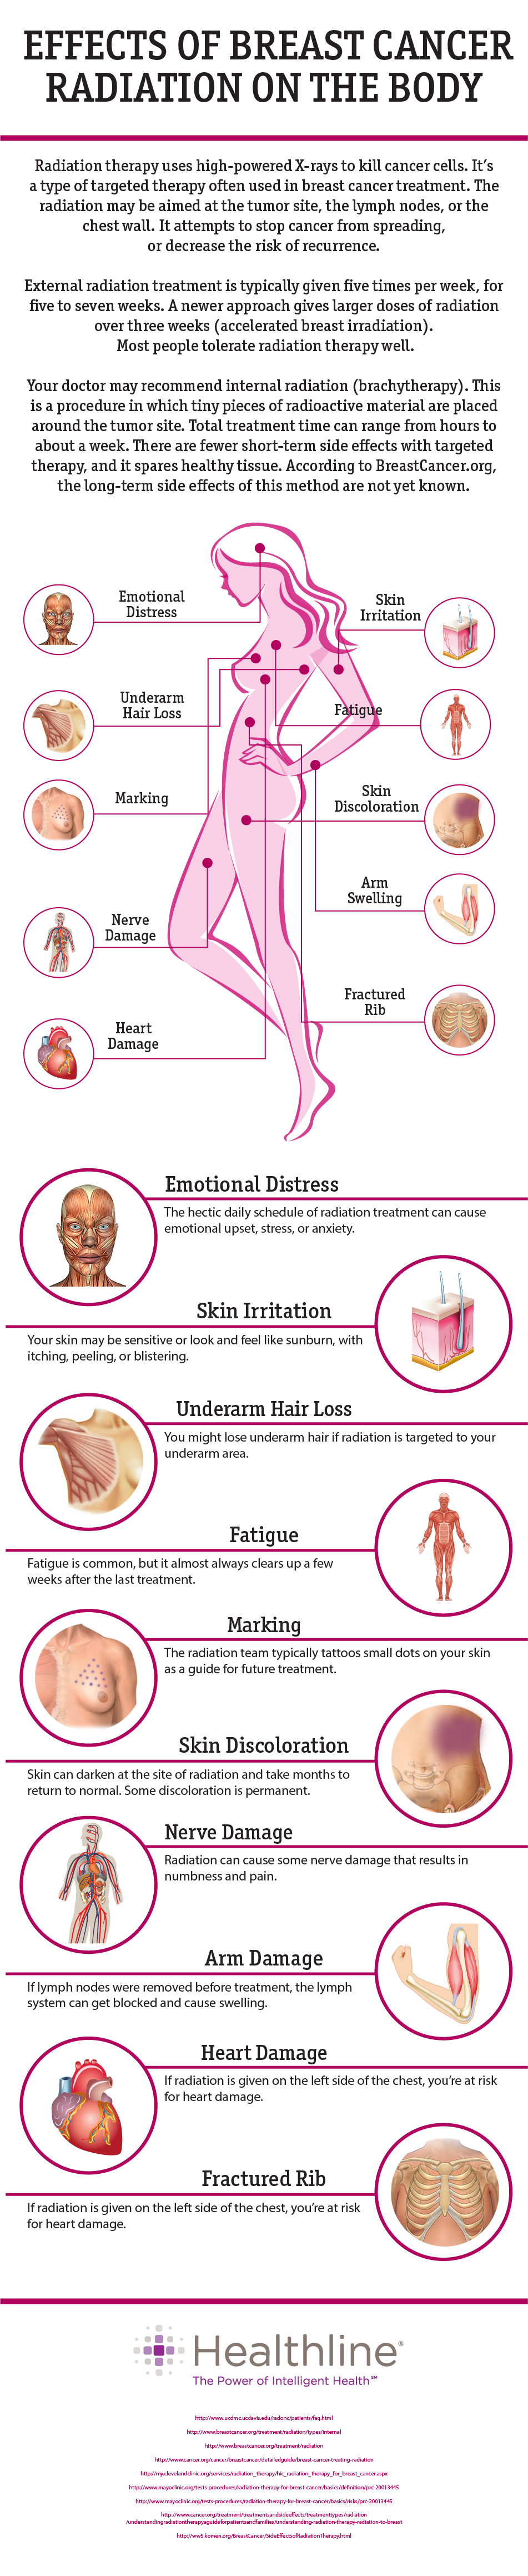 Effects of Breast Cancer Radiation on the Body